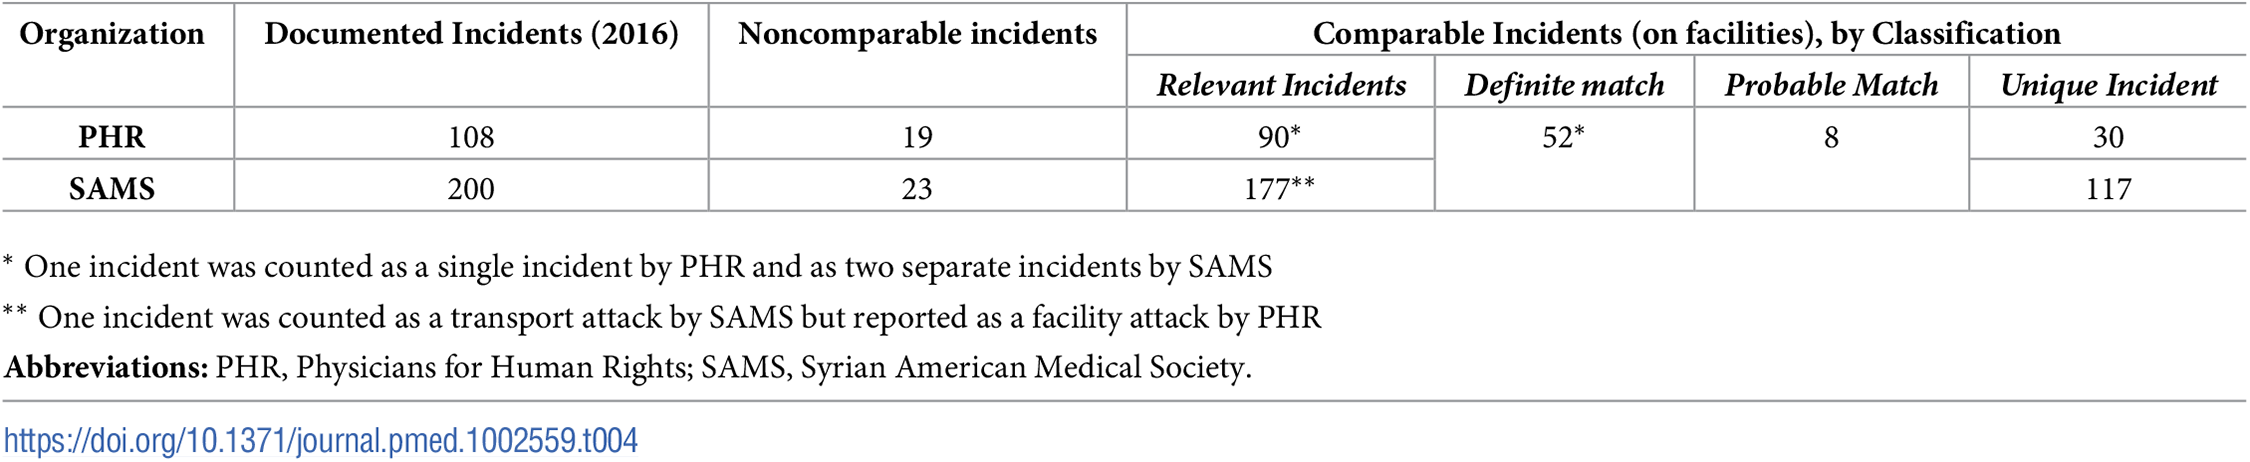 Incident comparison between PHR and SAMS, 2016.